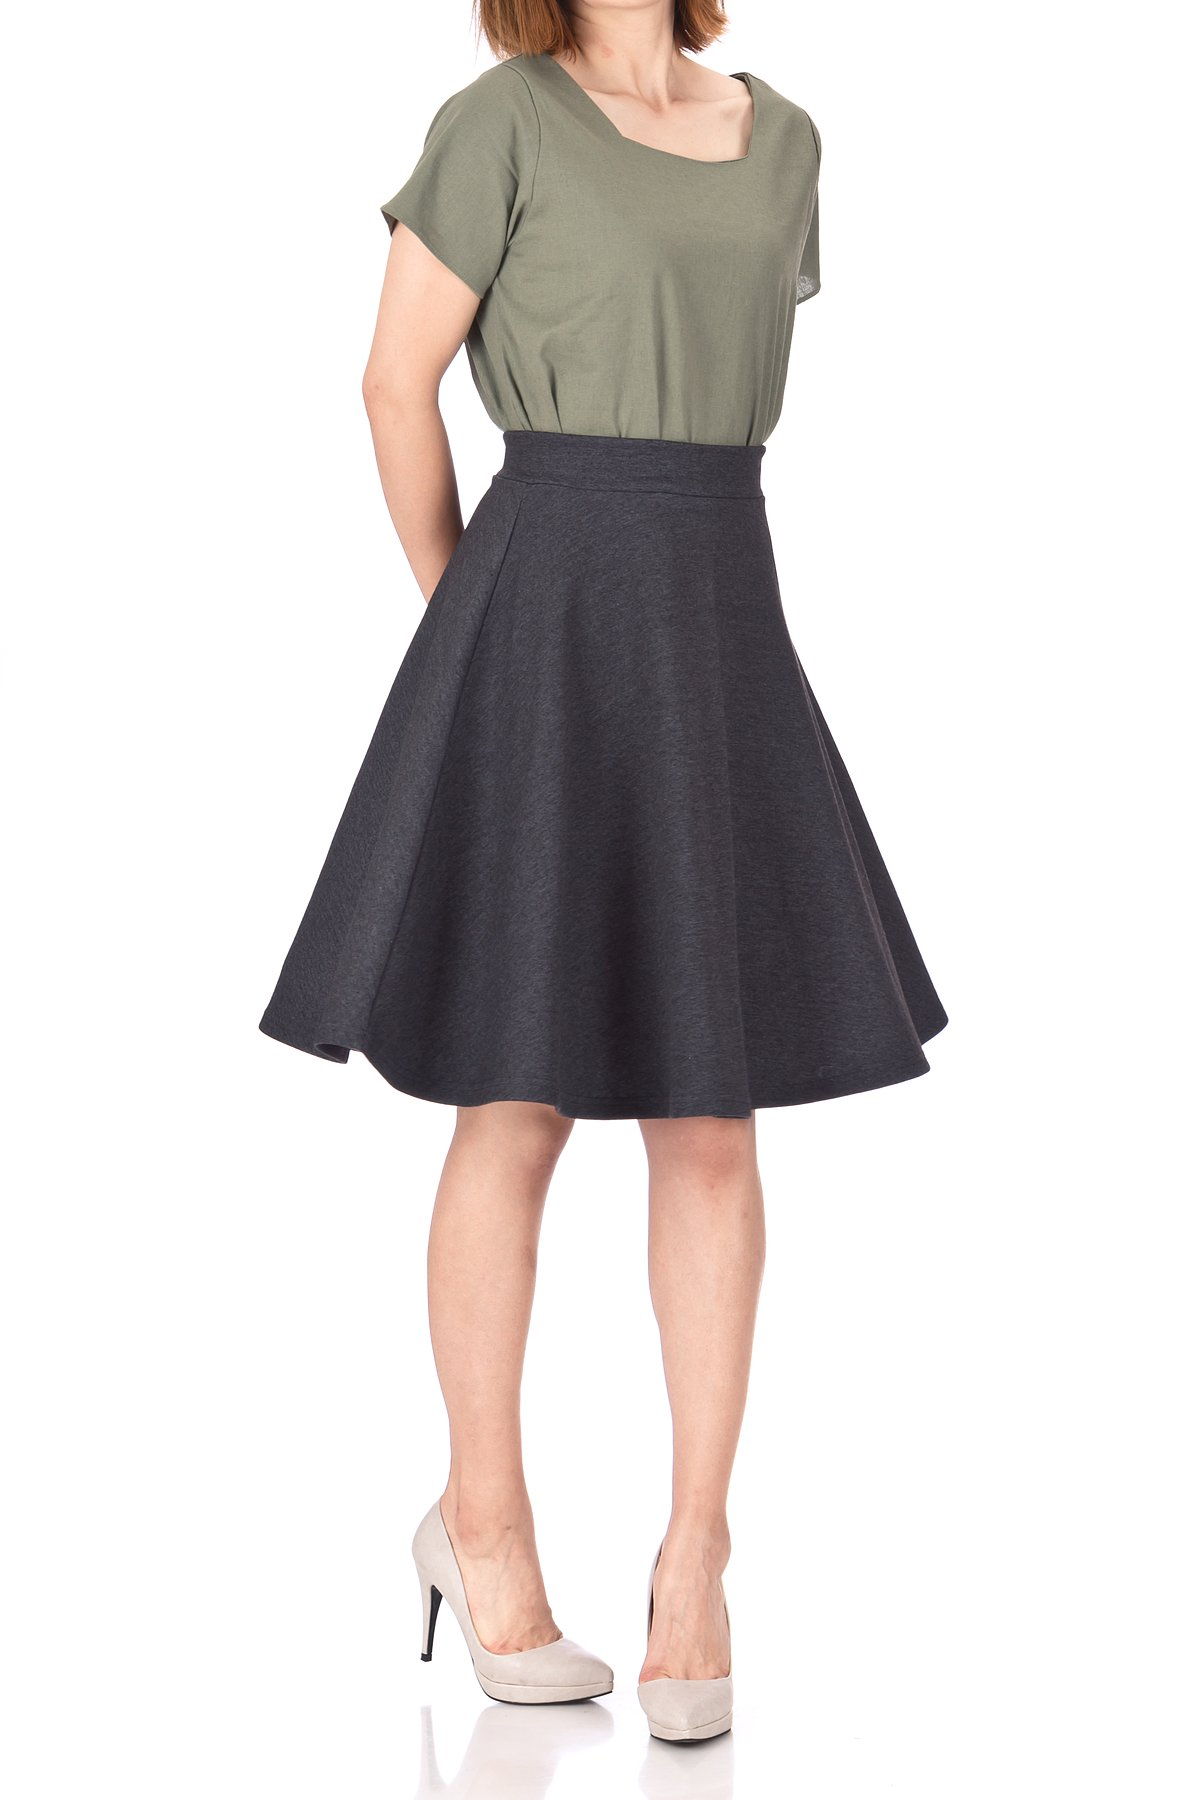 Comfy and Lovely Cotton Blend Versatile Casual Office High Waist A line Full Flared Swing Circle Skater Knee Length Skirt Charcoal 01 1